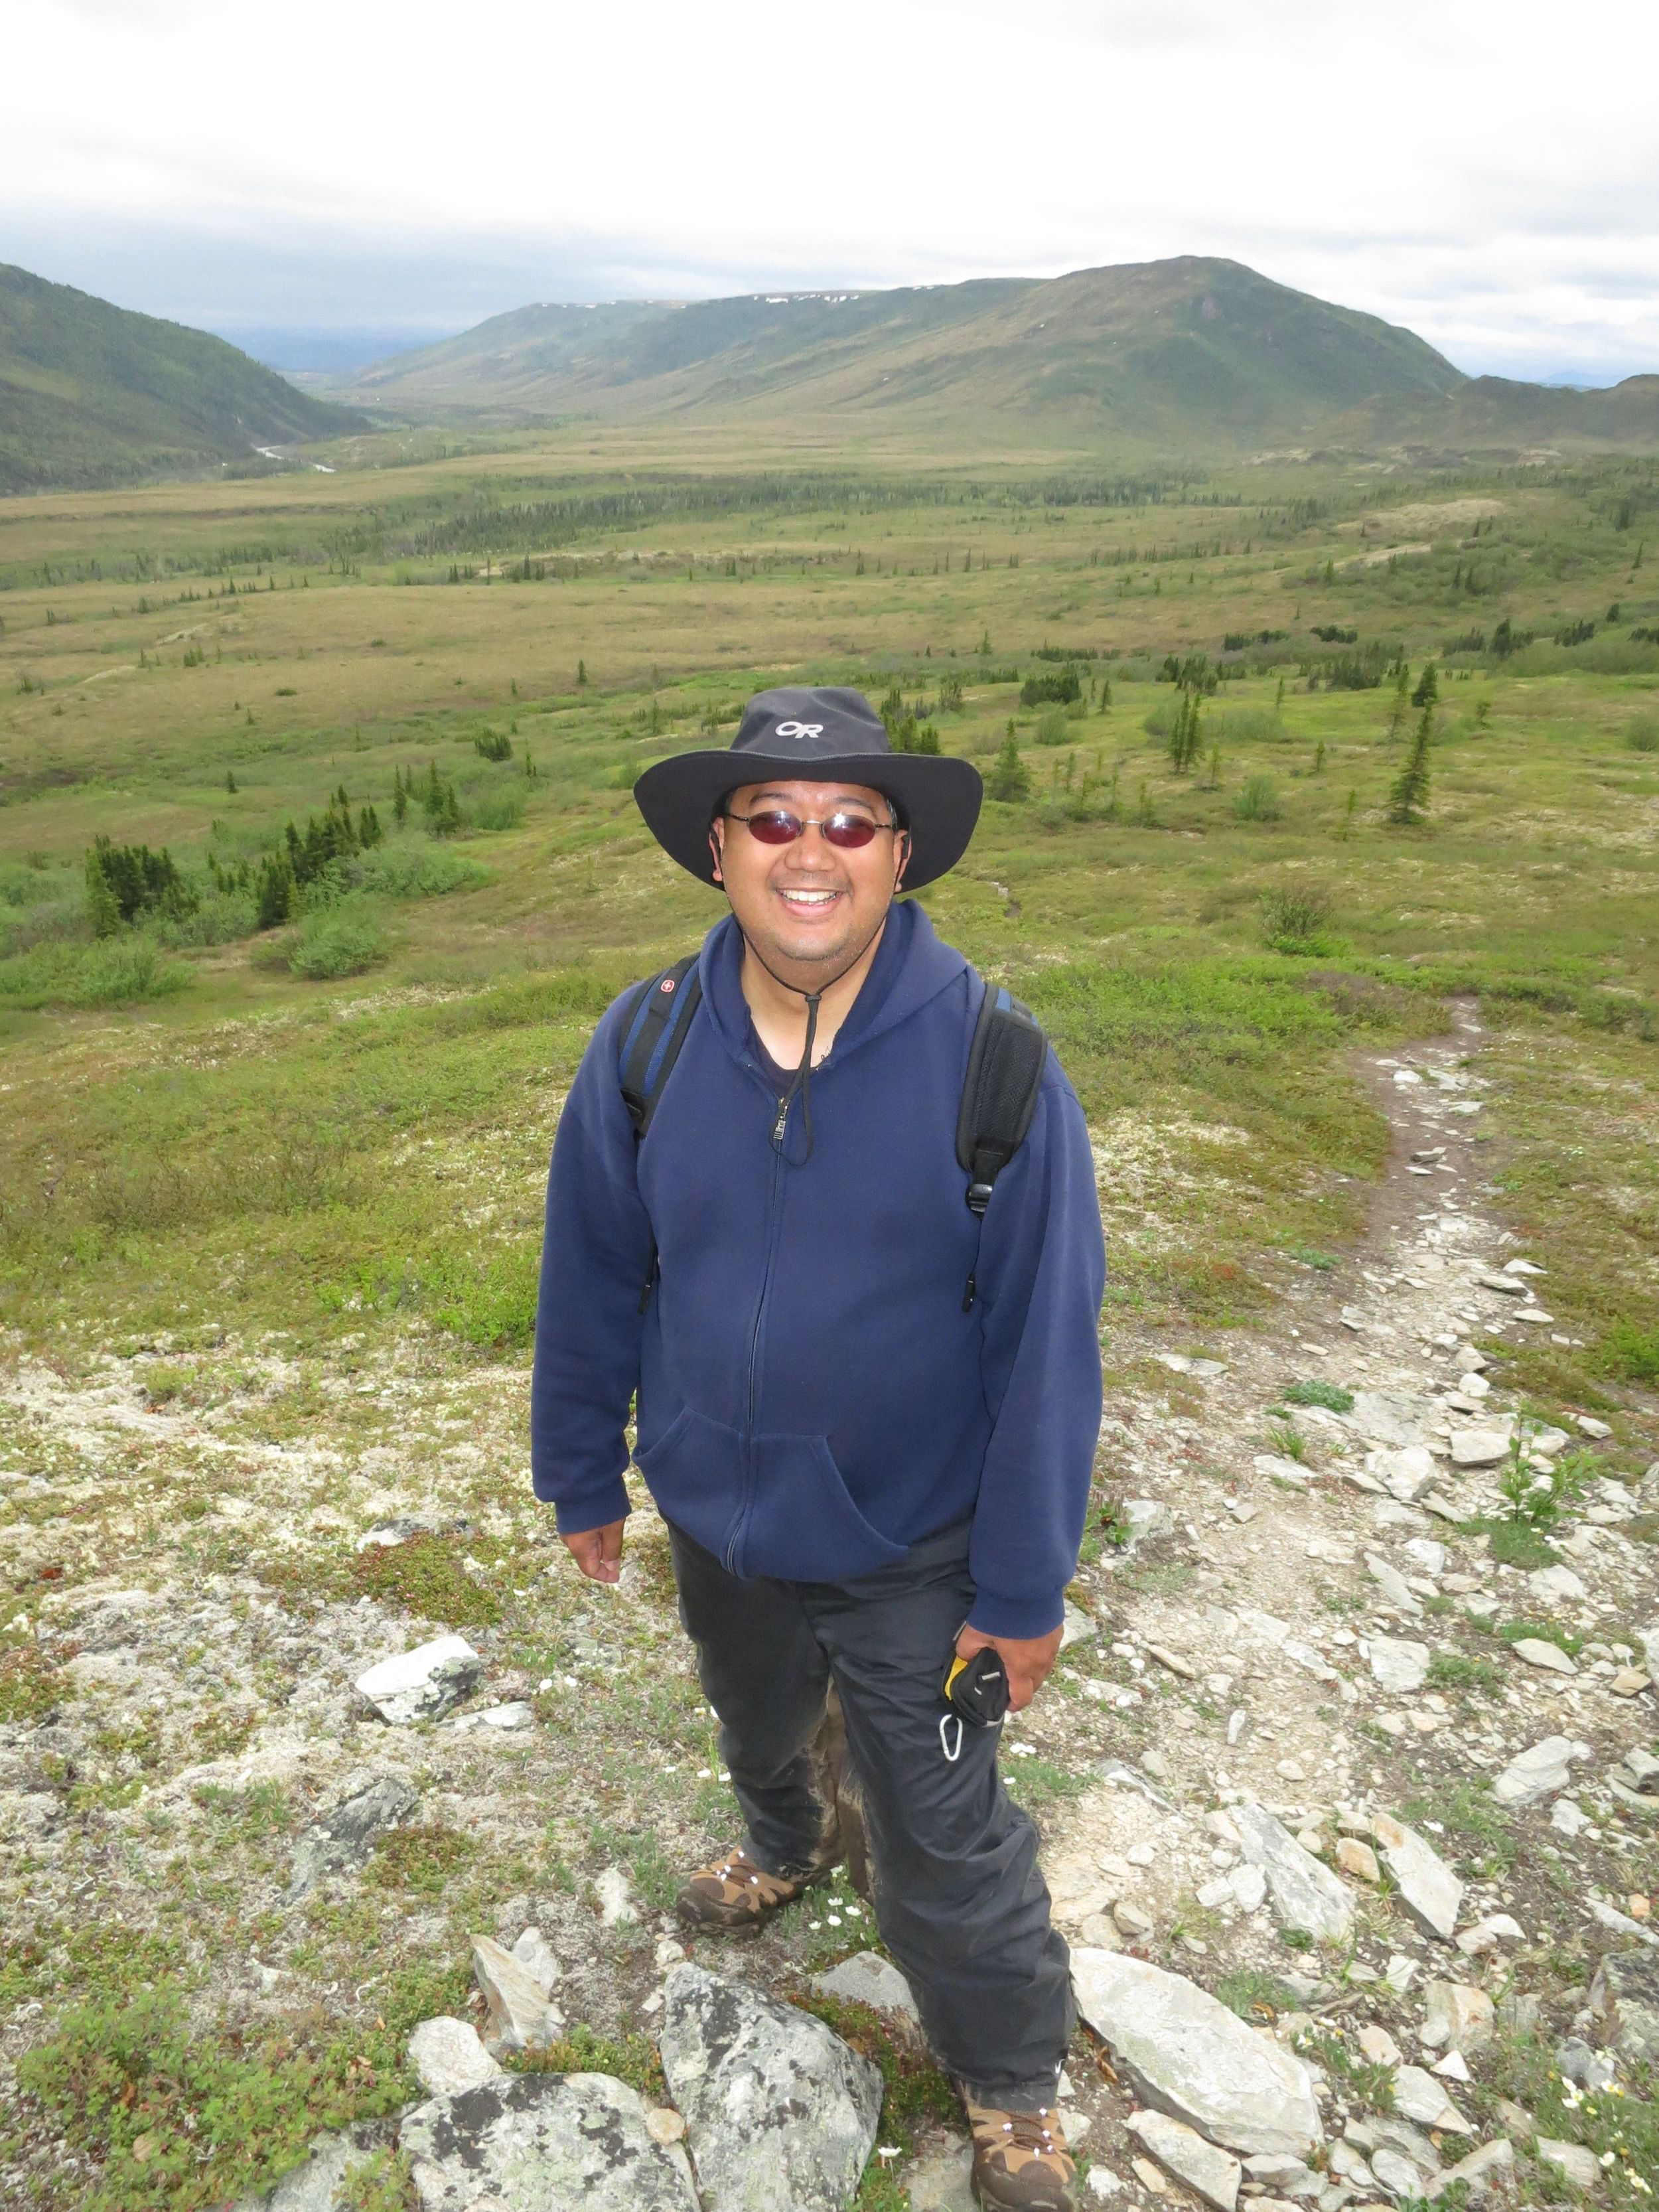 Hiking in the backcountry of Denali park